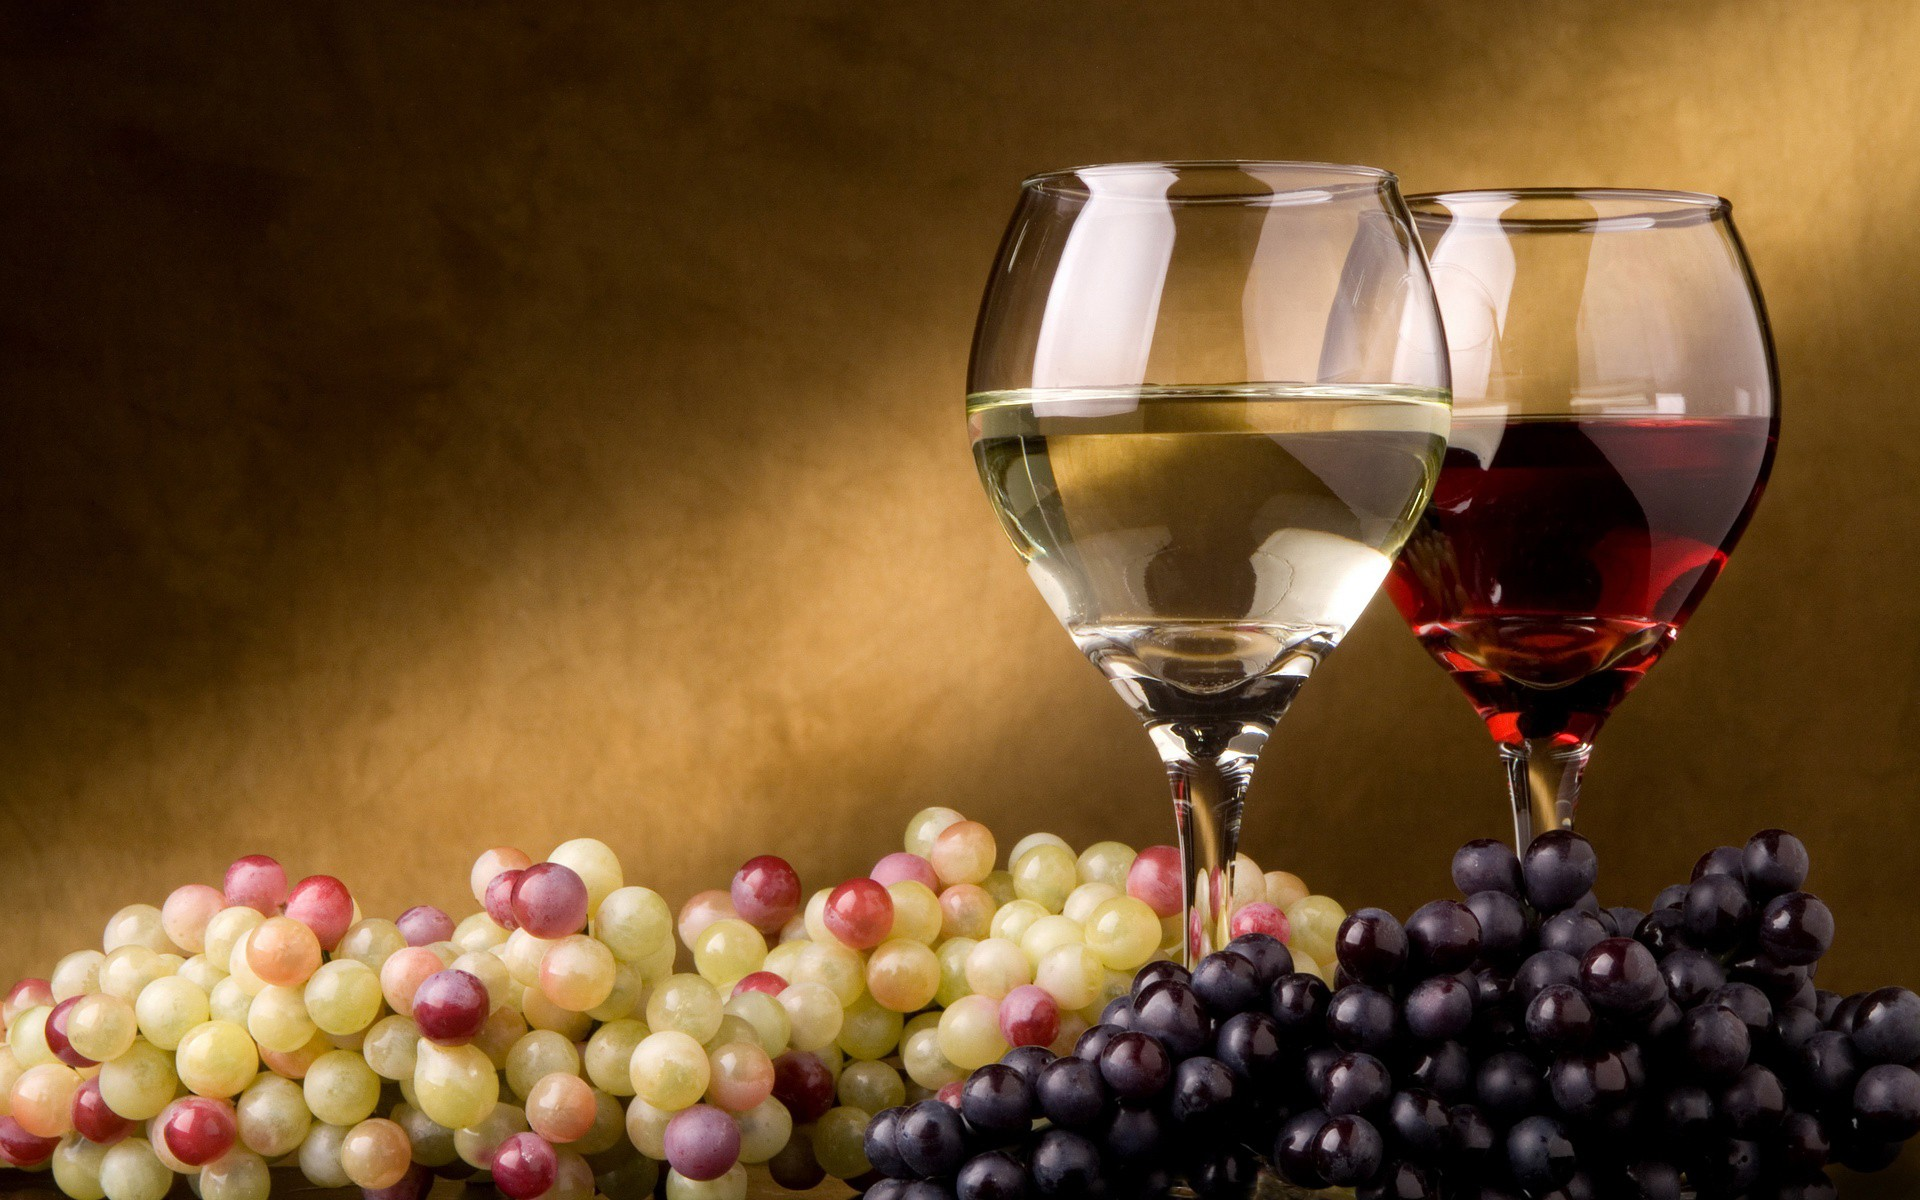 Grapes Wine Wallpaper 1920x1200 Grapes Wine 1920x1200